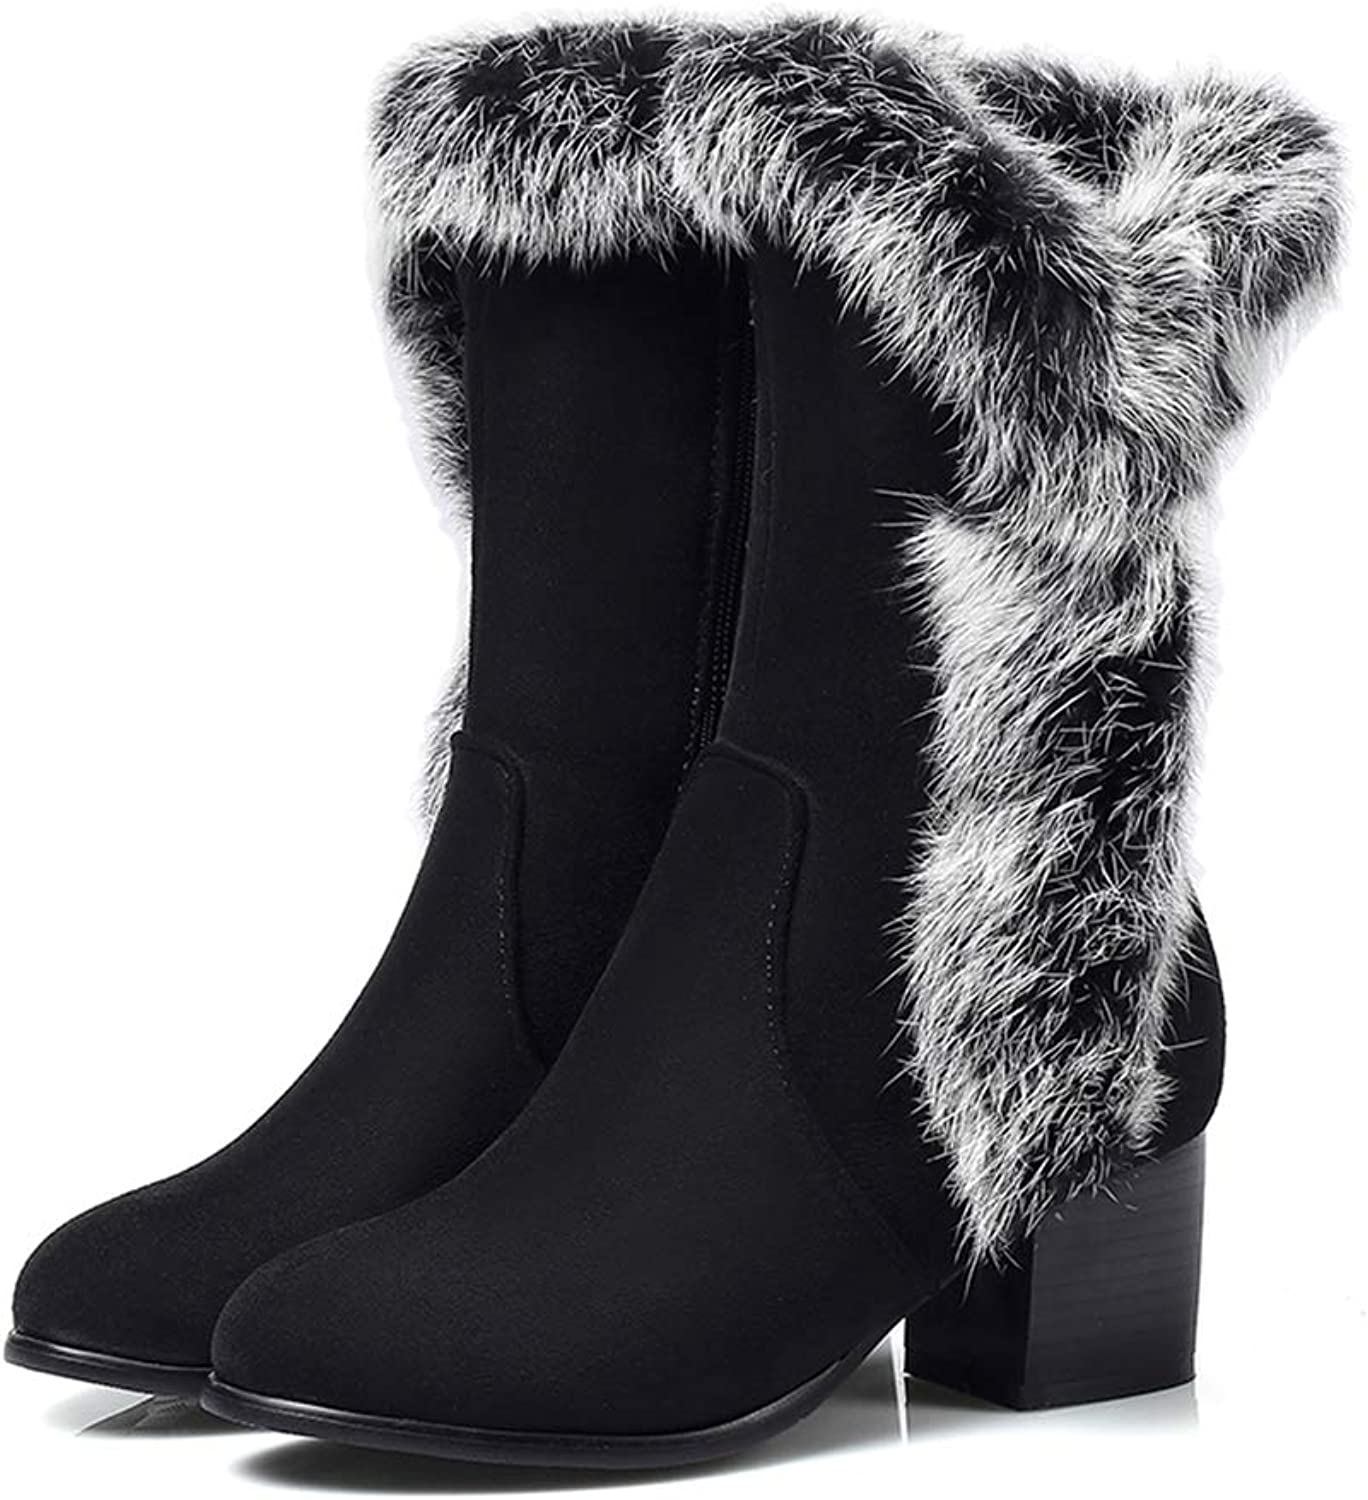 Hoxekle Women Winter Mid Calf Snow Boot Square Mid Heel Round Toe Black Faxu Fur Zipper Rubber Fashion Casual Outdoor shoes